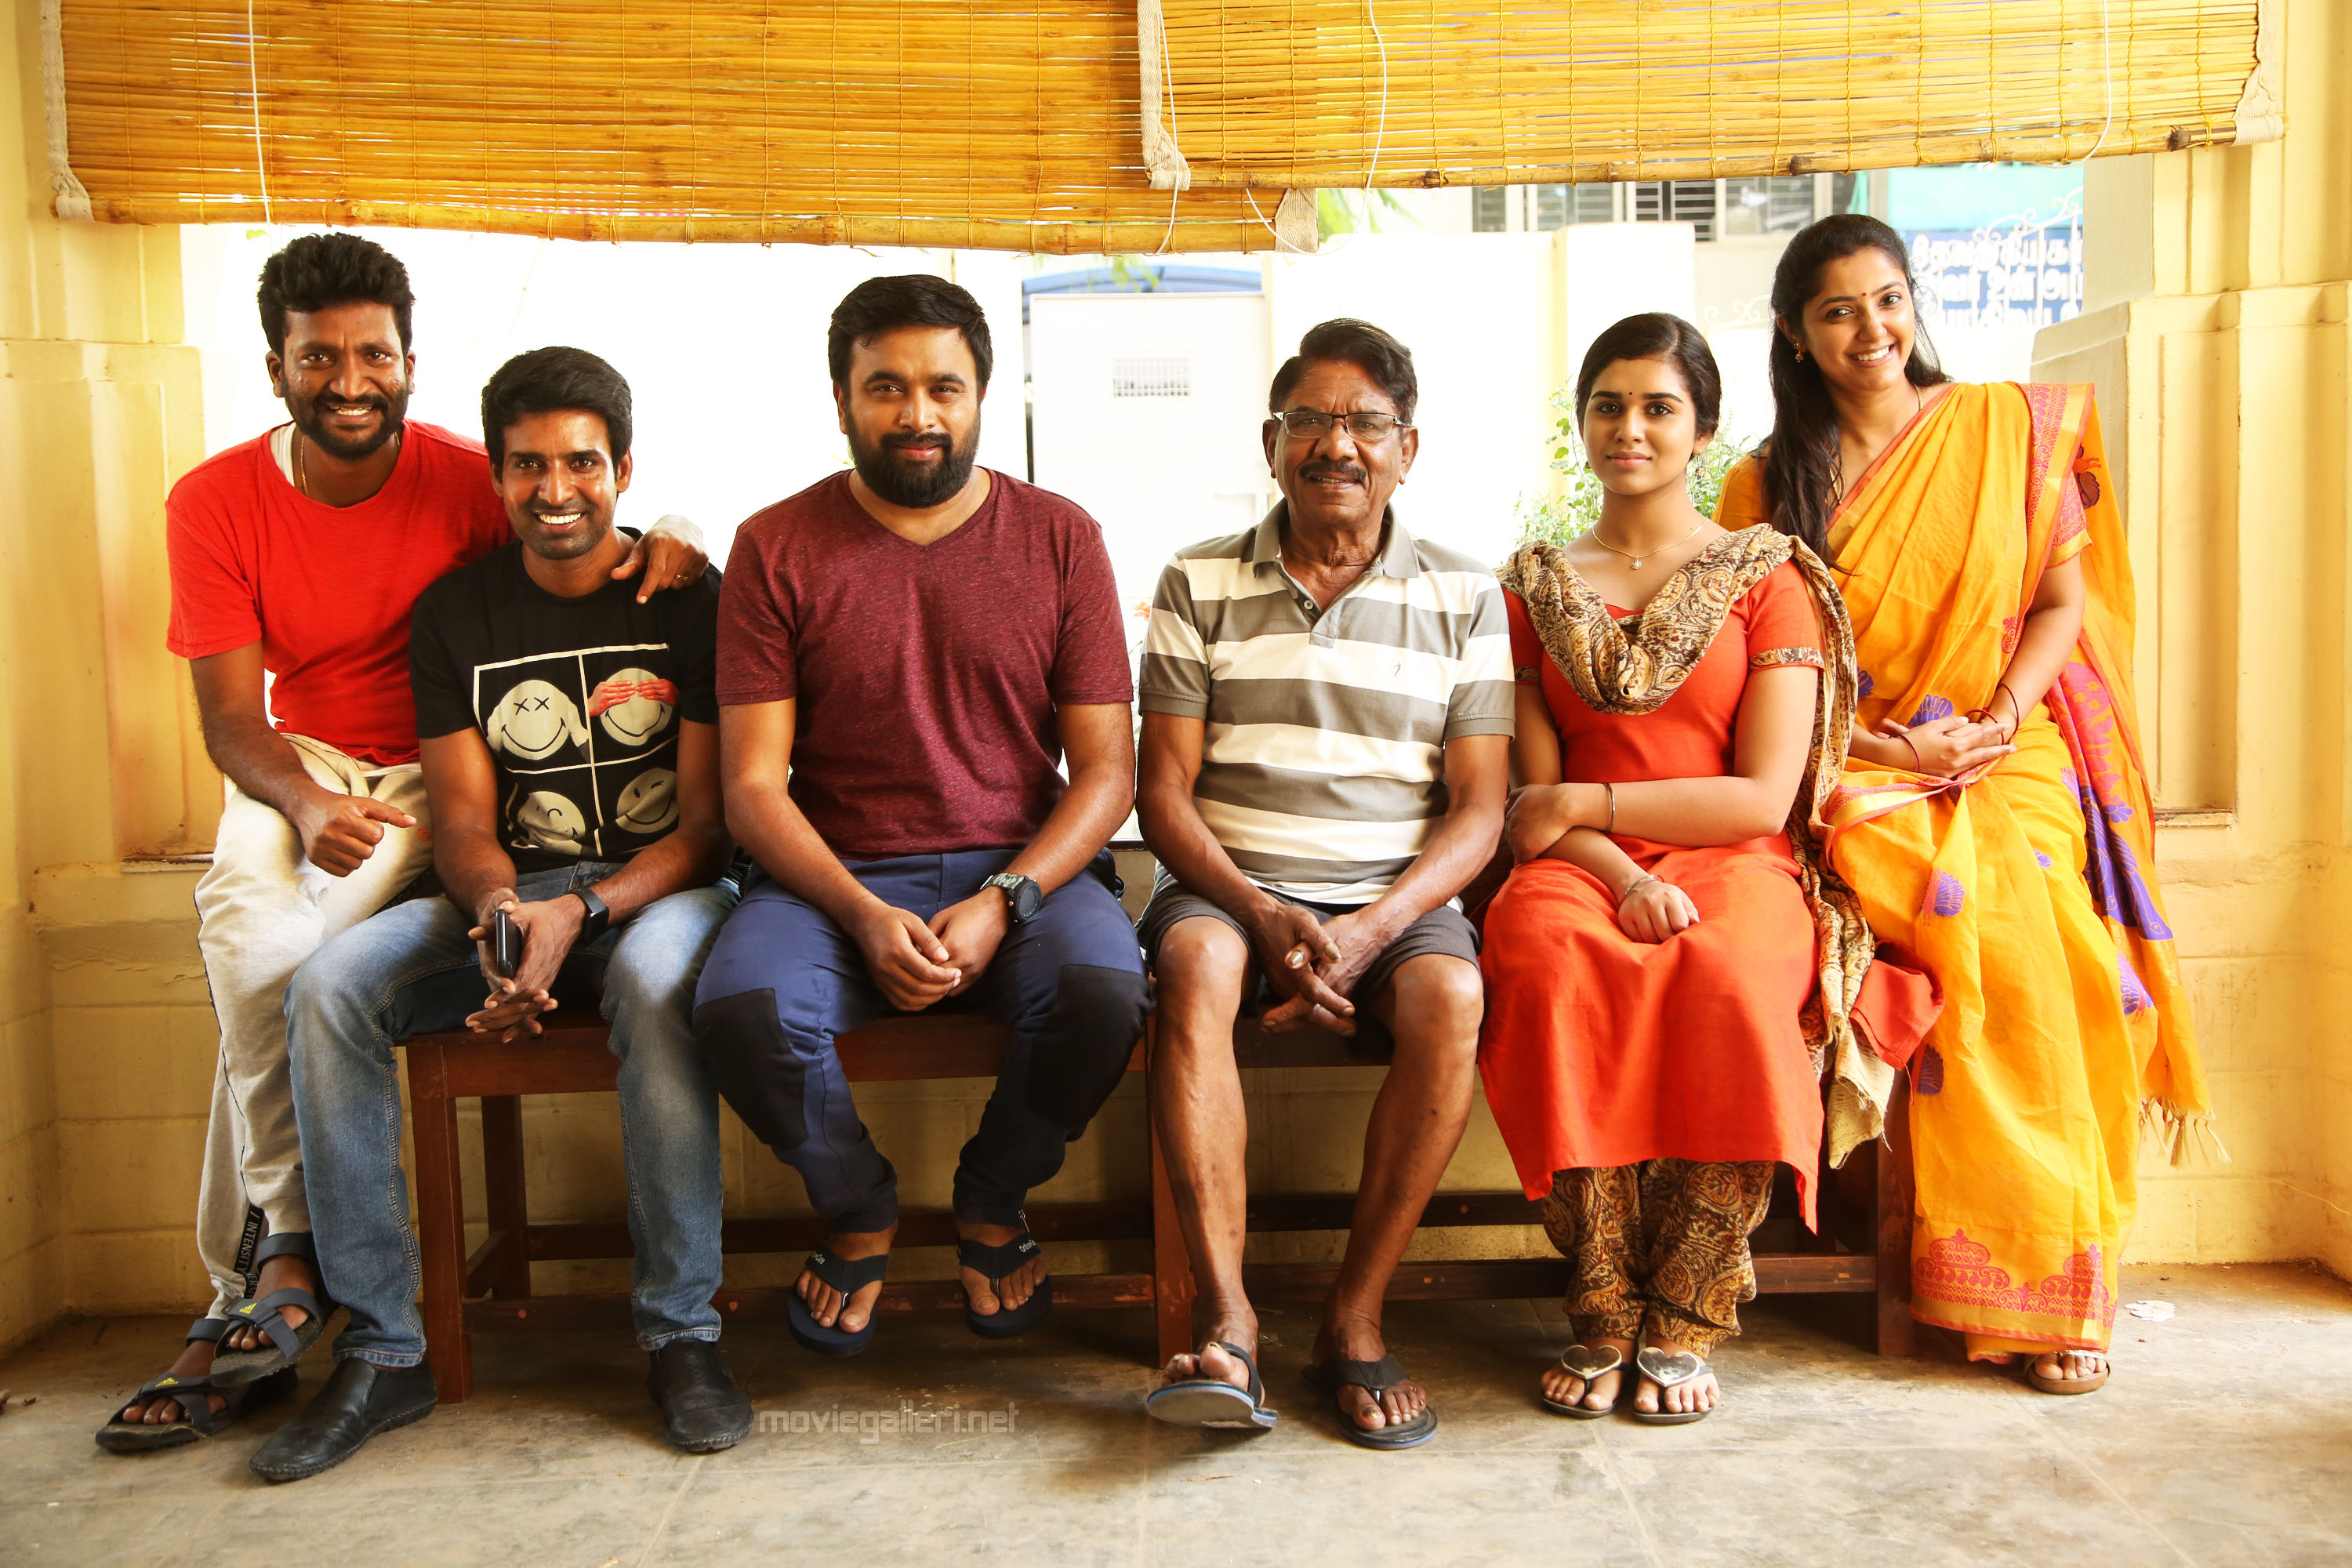 Director Suseenthiran Kennedy Club movie dubbed in Chinese language